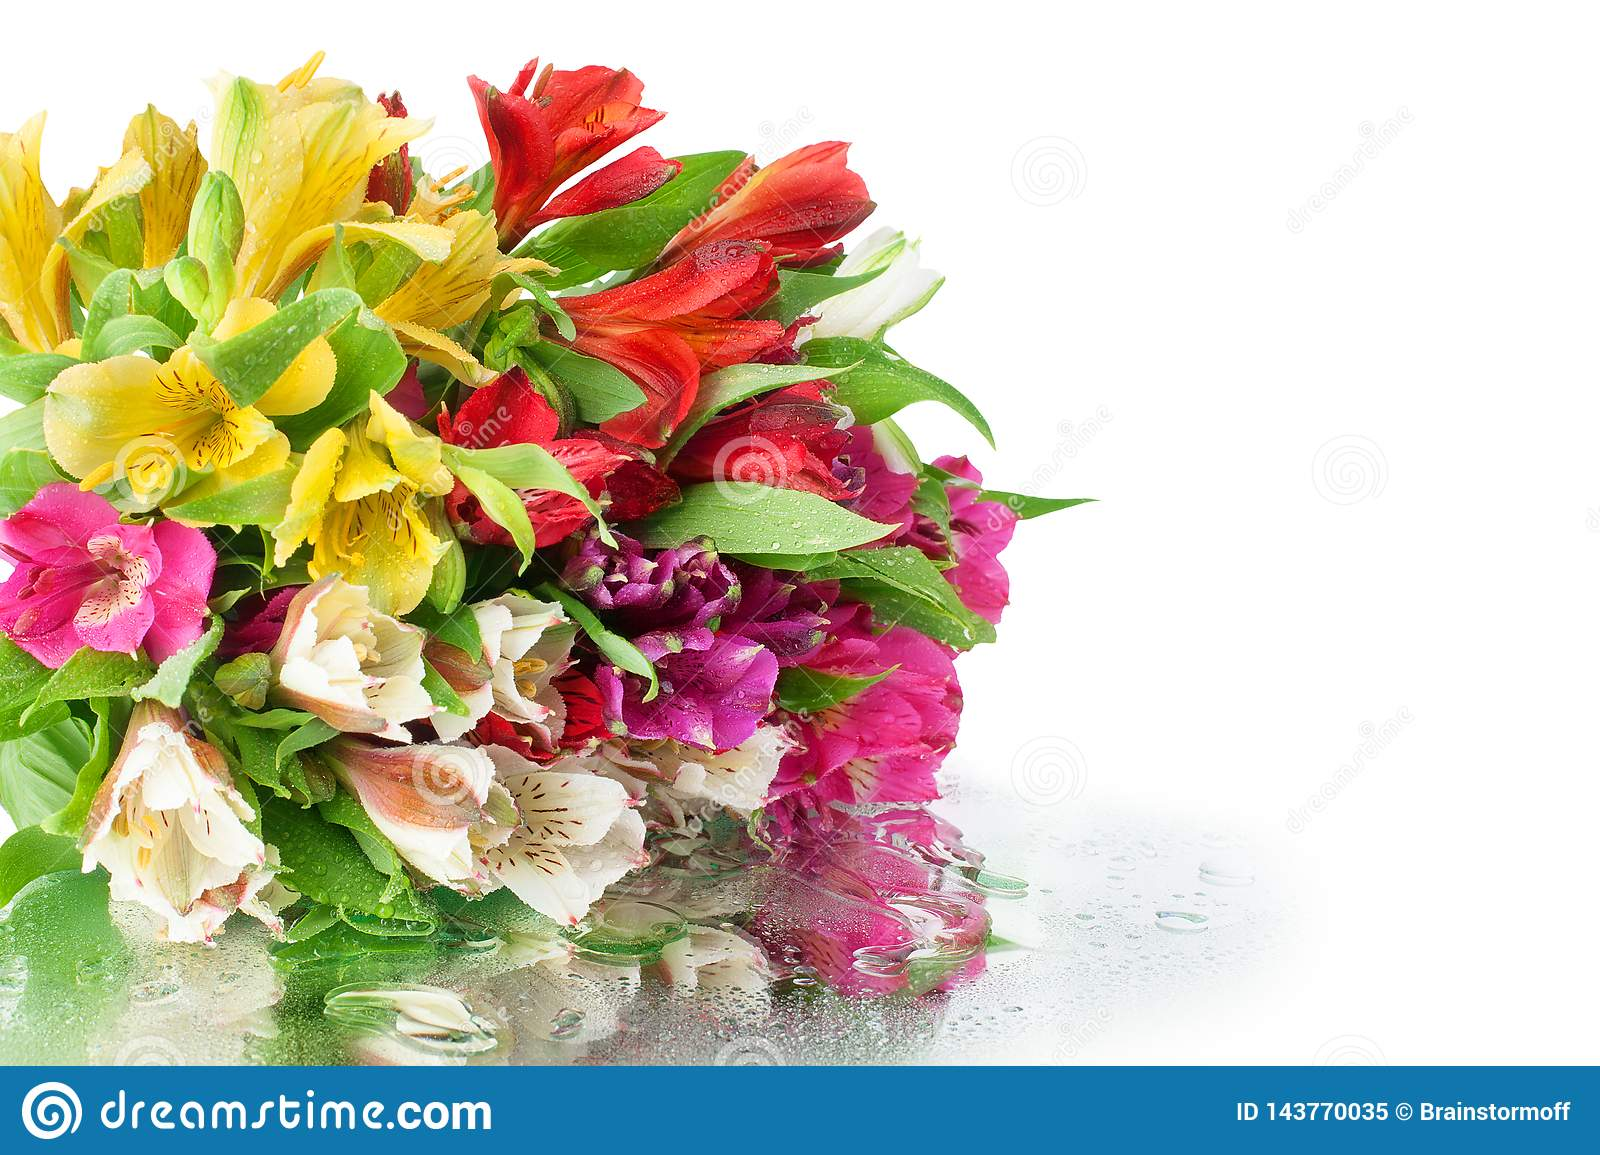 Multicolored alstroemeria flowers bouquet on white mirror background in water drops isolated close up